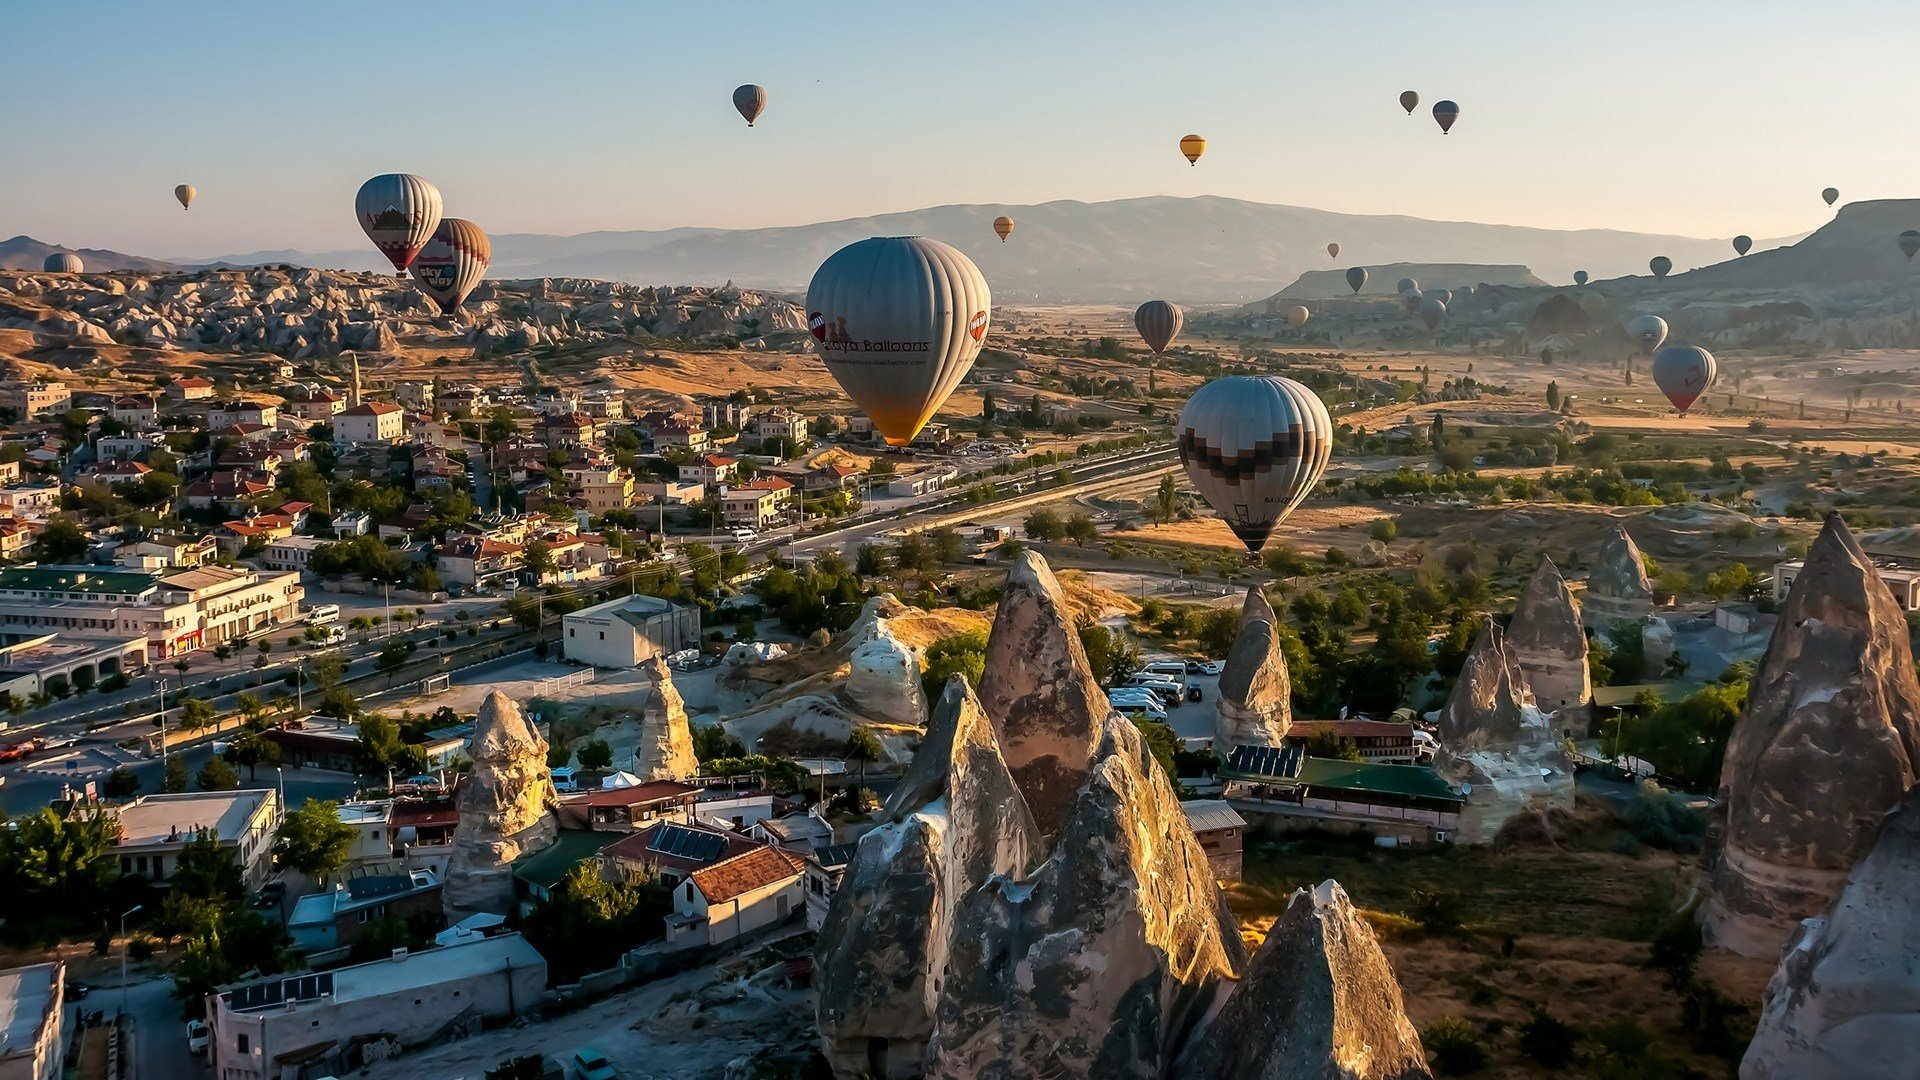 Travel Wallpapers Hd 1366x768: Ballon Full HD Wallpaper And Background Image